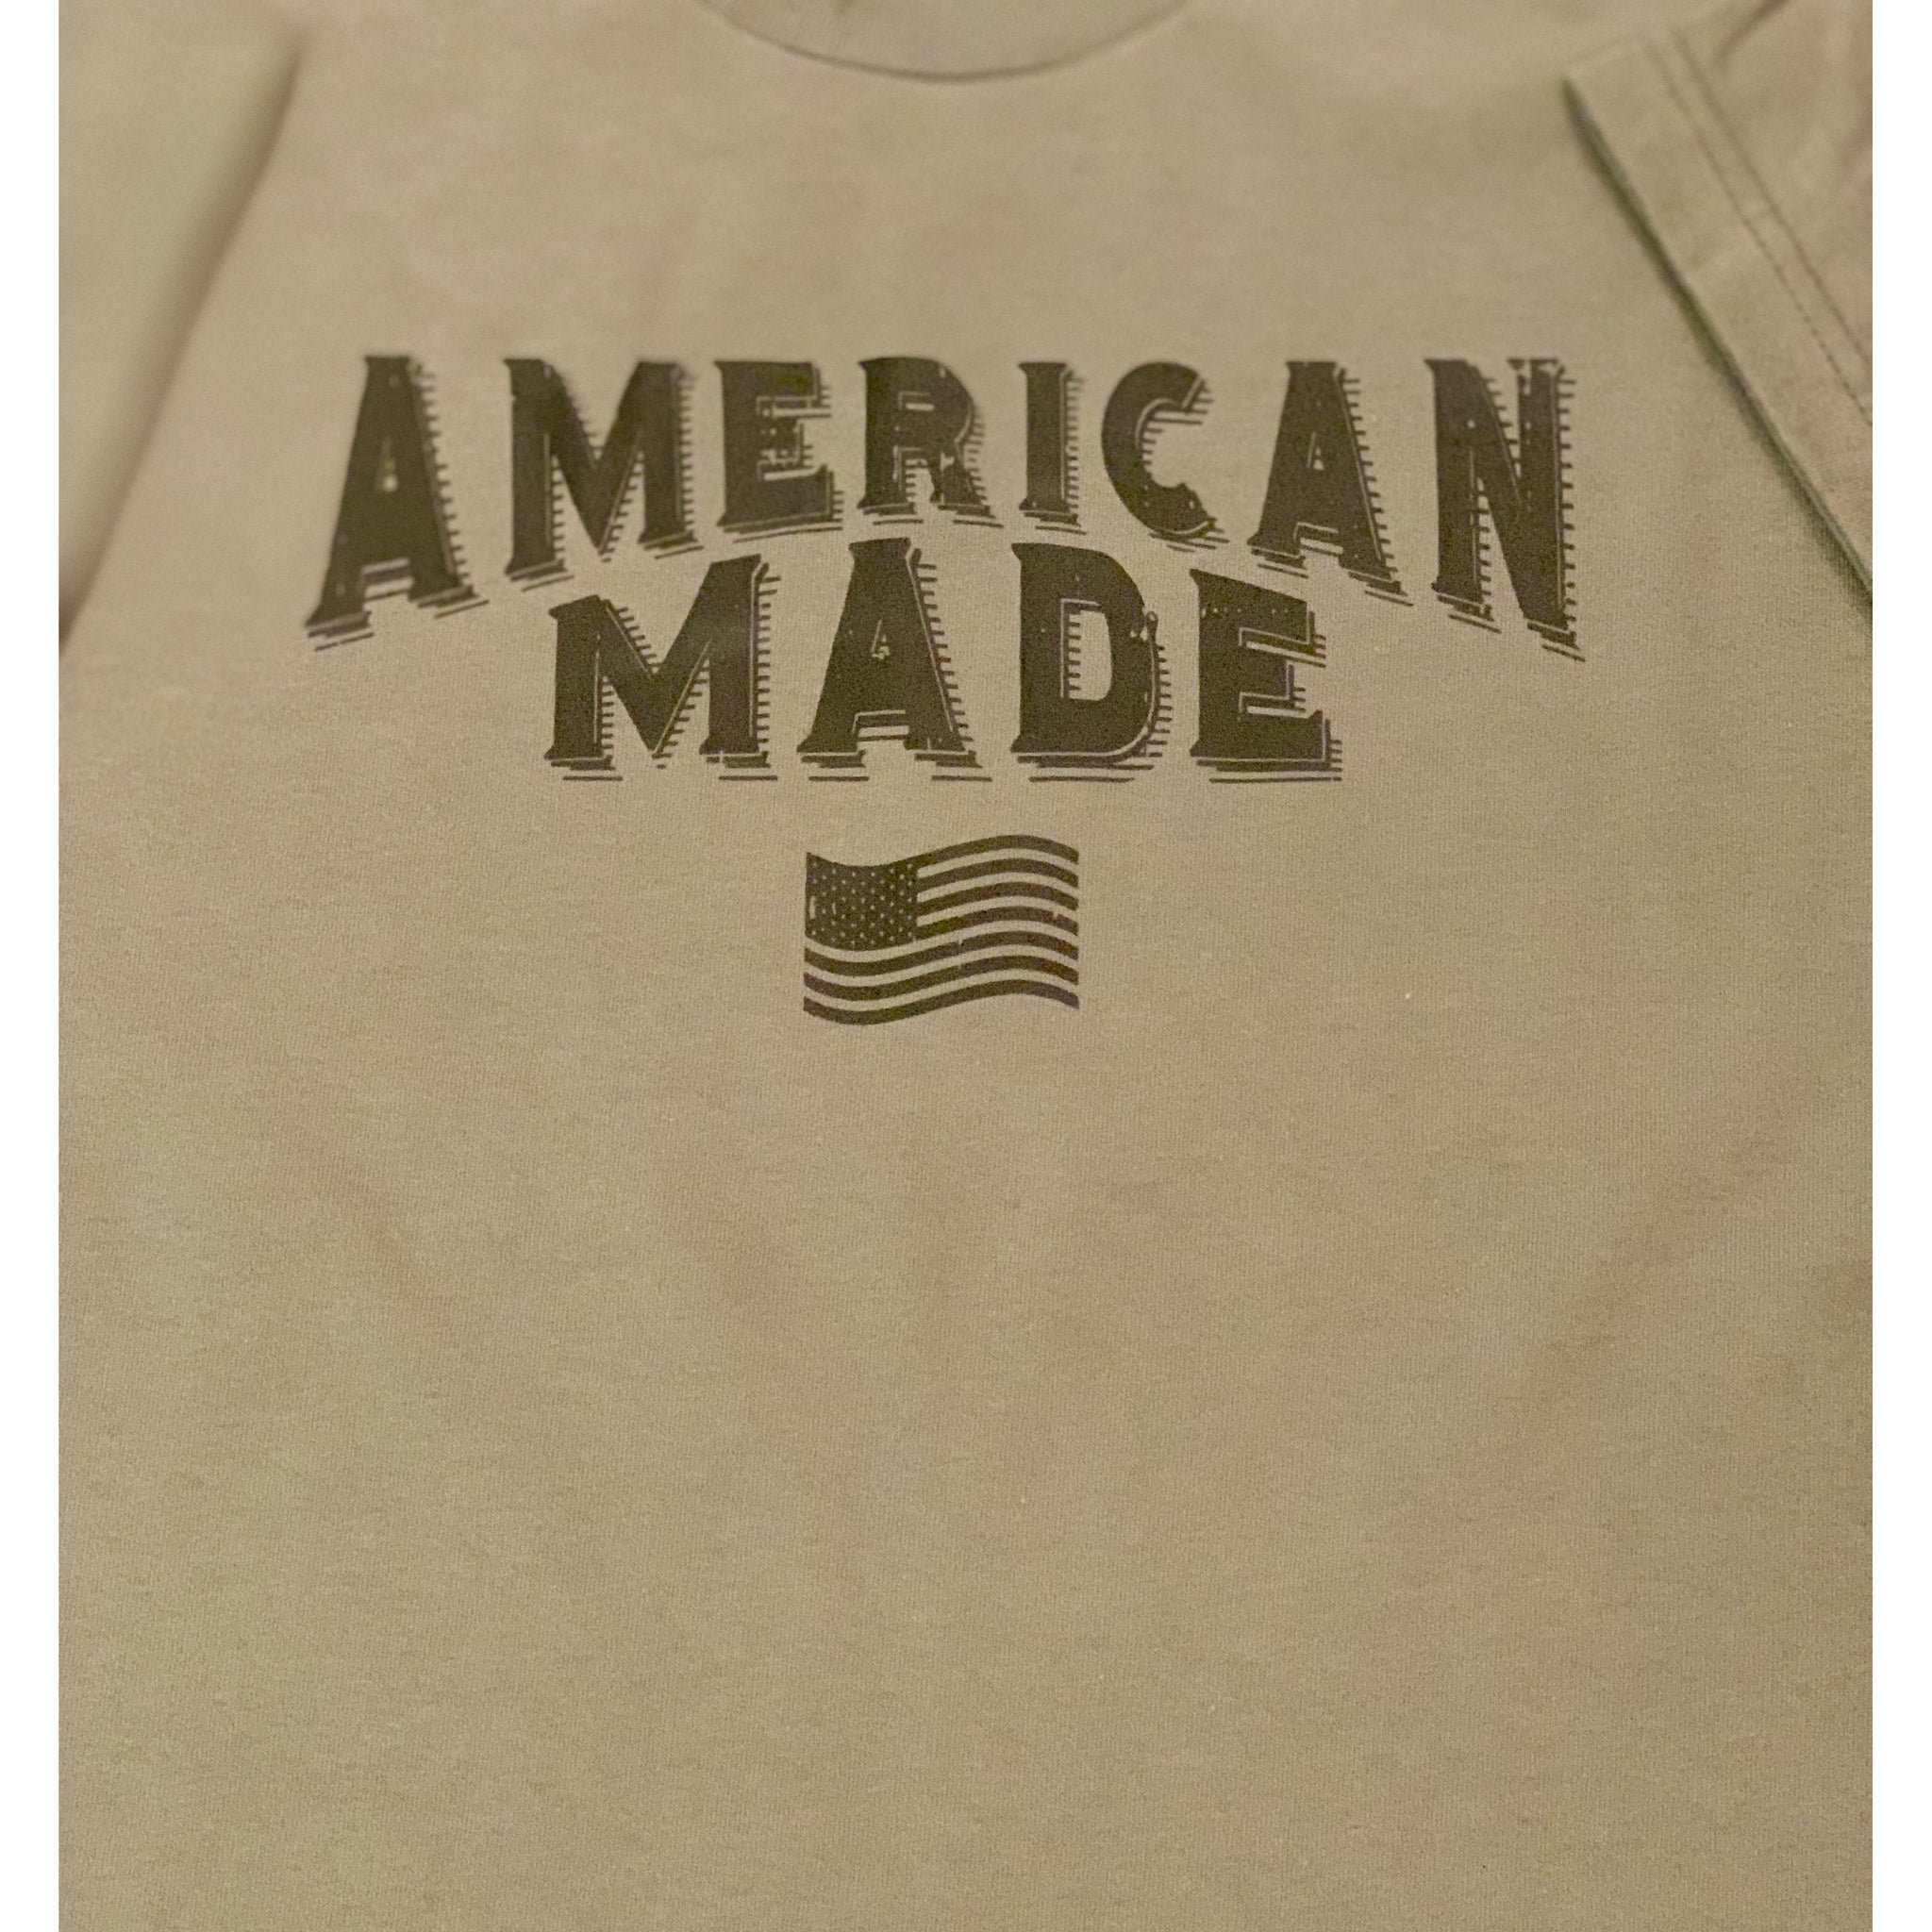 Short Sleeve Tee - American Made with Flag (Distressed)